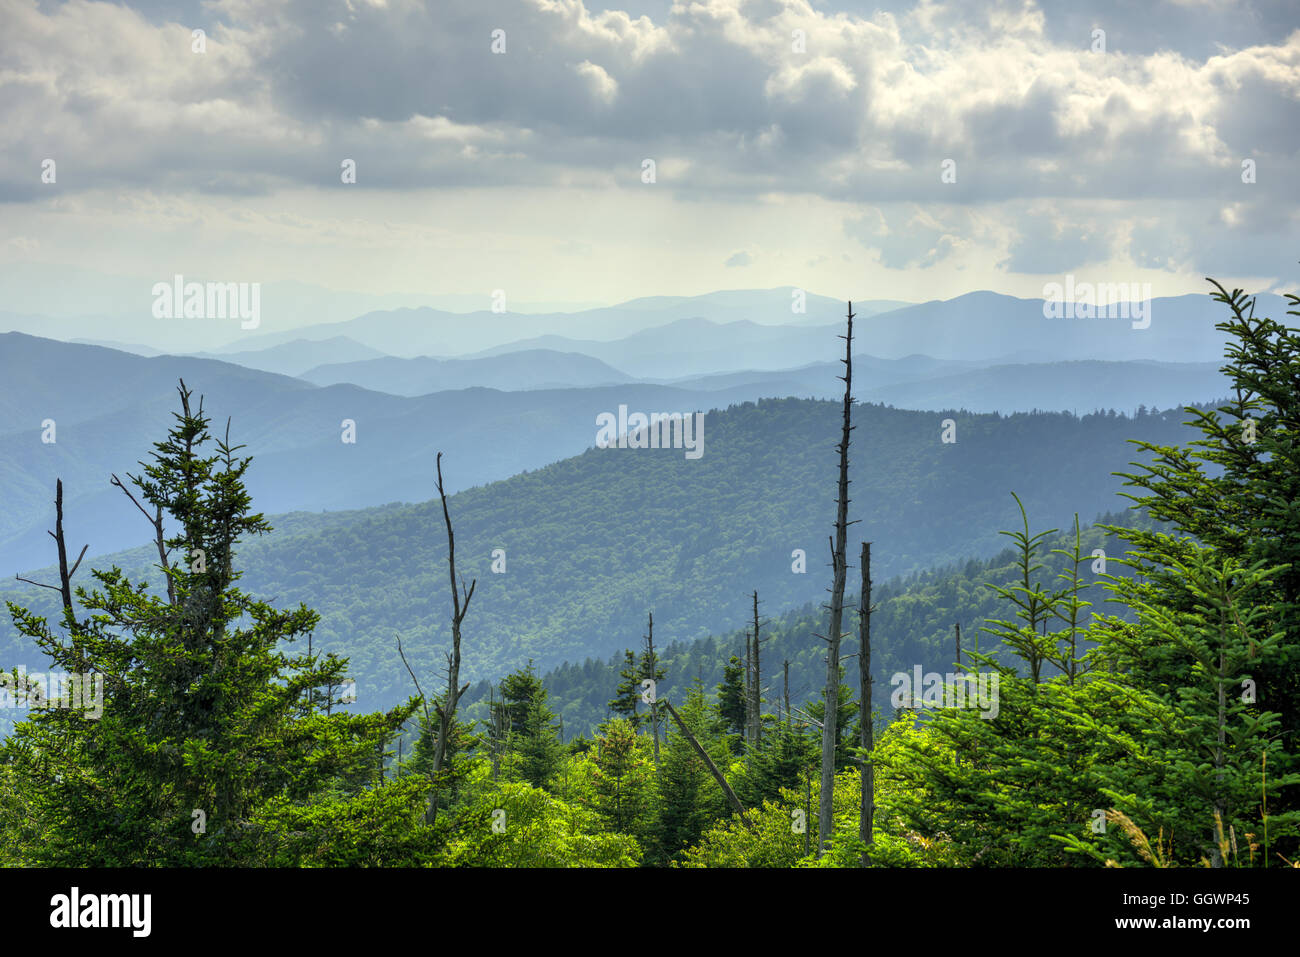 Summer mountain ridges in North Carolina above the Newfound Gap area, just below Clingman's Dome. Photo by Darrell - Stock Image